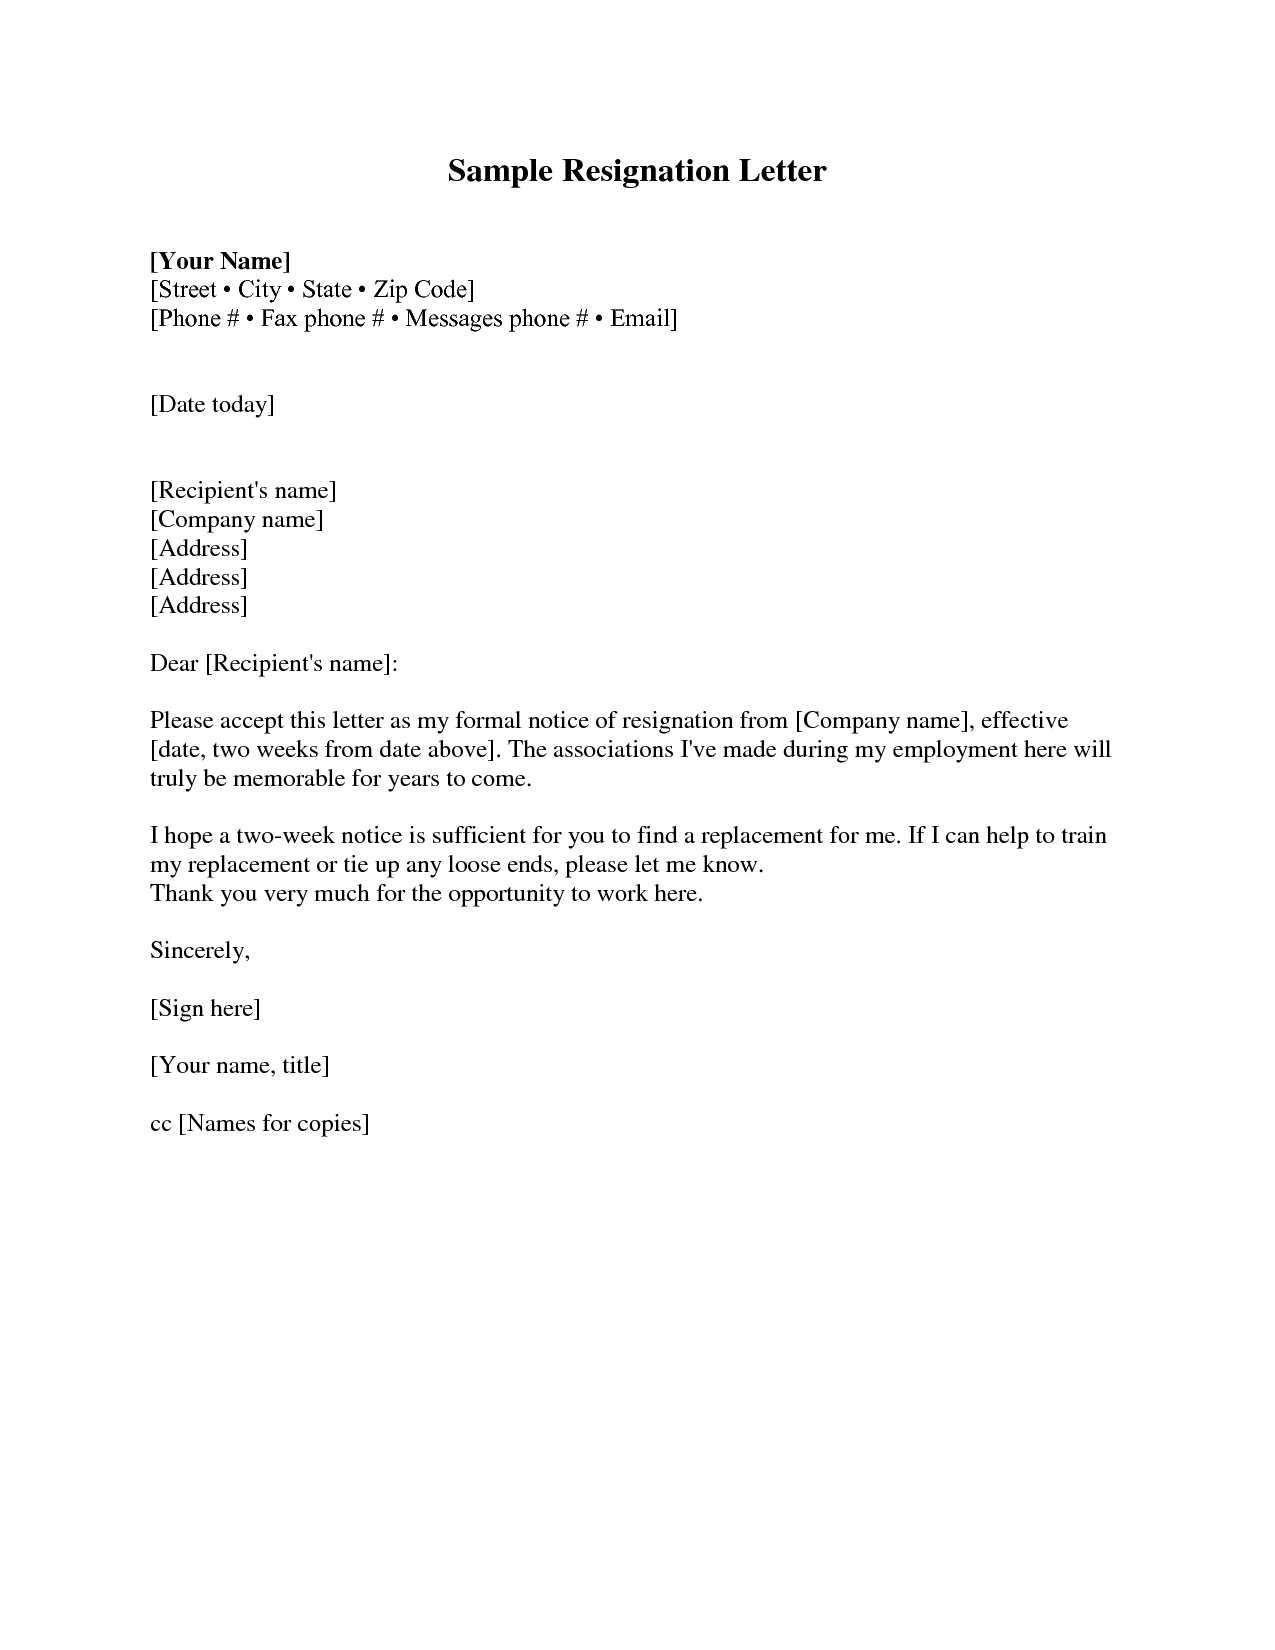 resignation letter sample 2 weeks notice free2img com yup